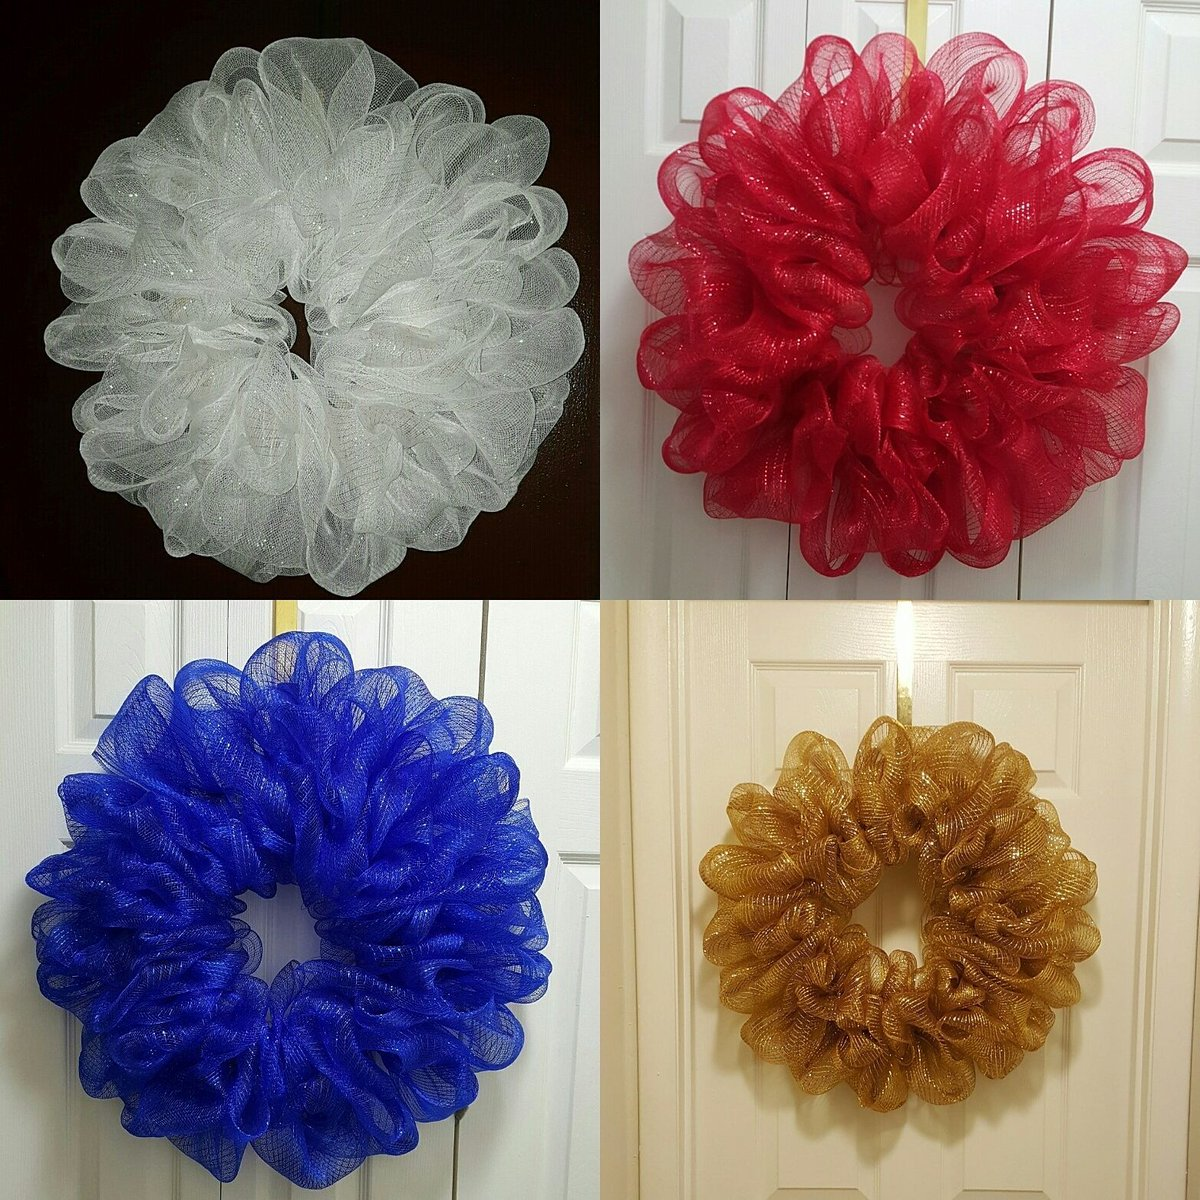 Ready to decorate #DIY or leave as is $19.99 visit our #etsyshop at  http:// buff.ly/2w6jyuI  &nbsp;   #etsychaching #weddings #christmas #homedecor<br>http://pic.twitter.com/4EMBFldvIw